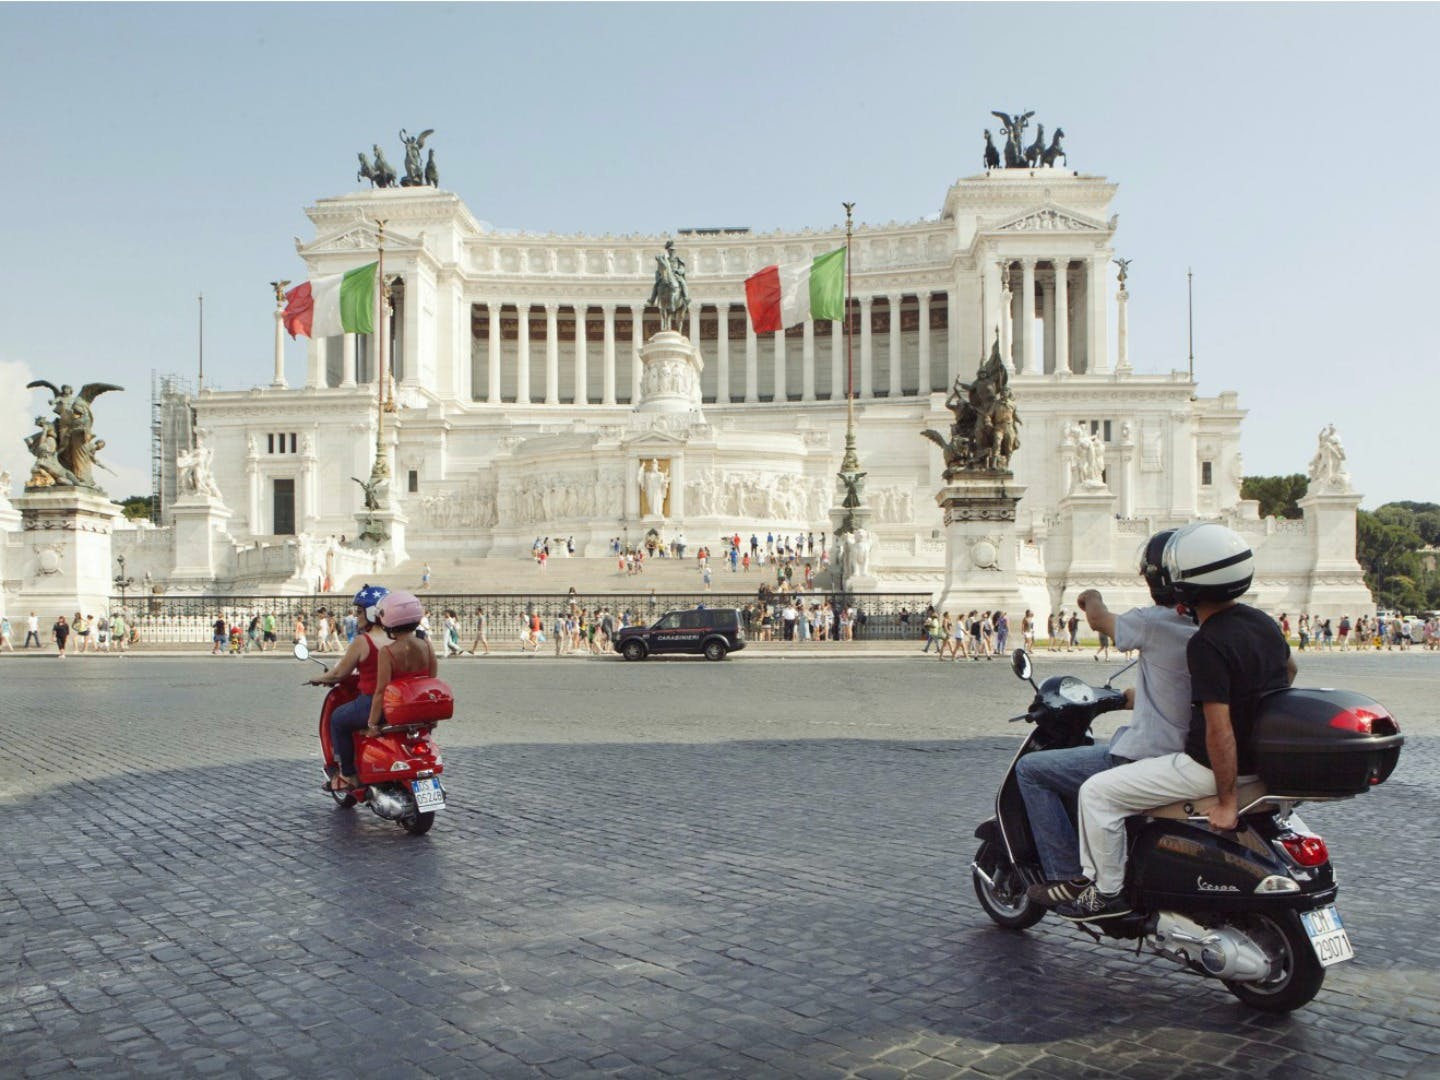 hills of ancient rome vespa tour-1